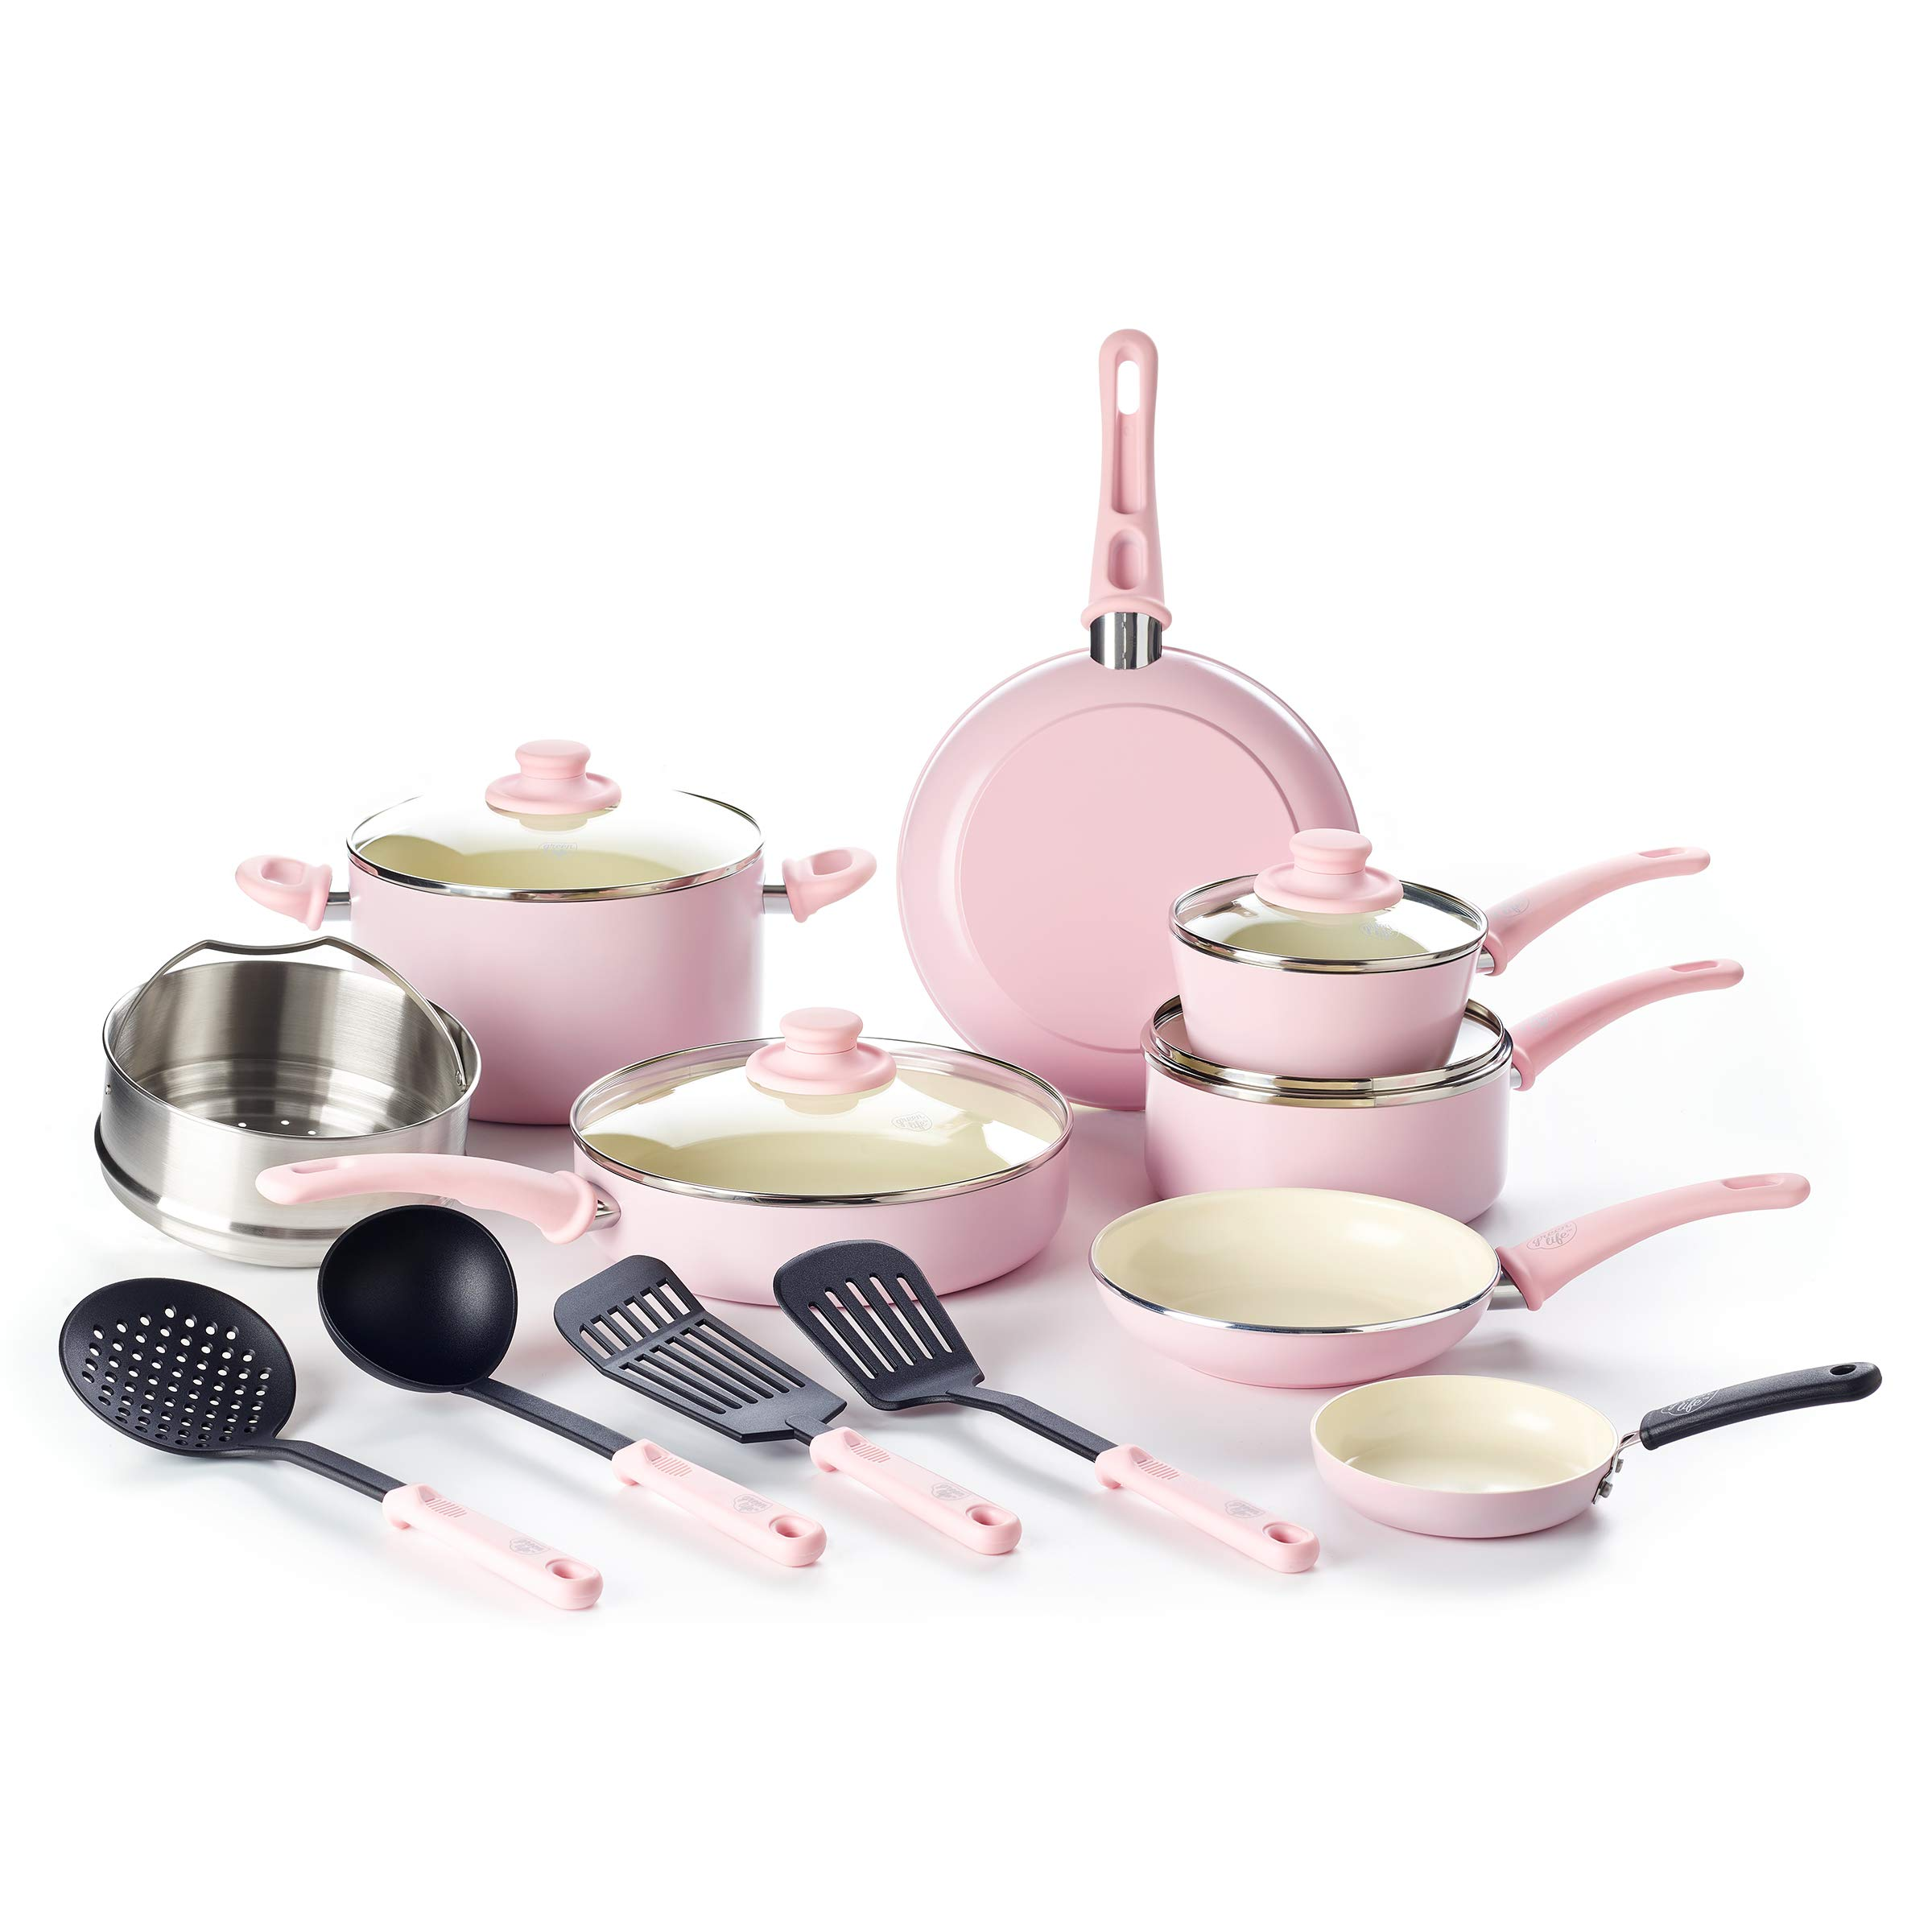 GreenLife CC002377-001 Soft Grip Set, 16-Piece, Pink by GreenLife